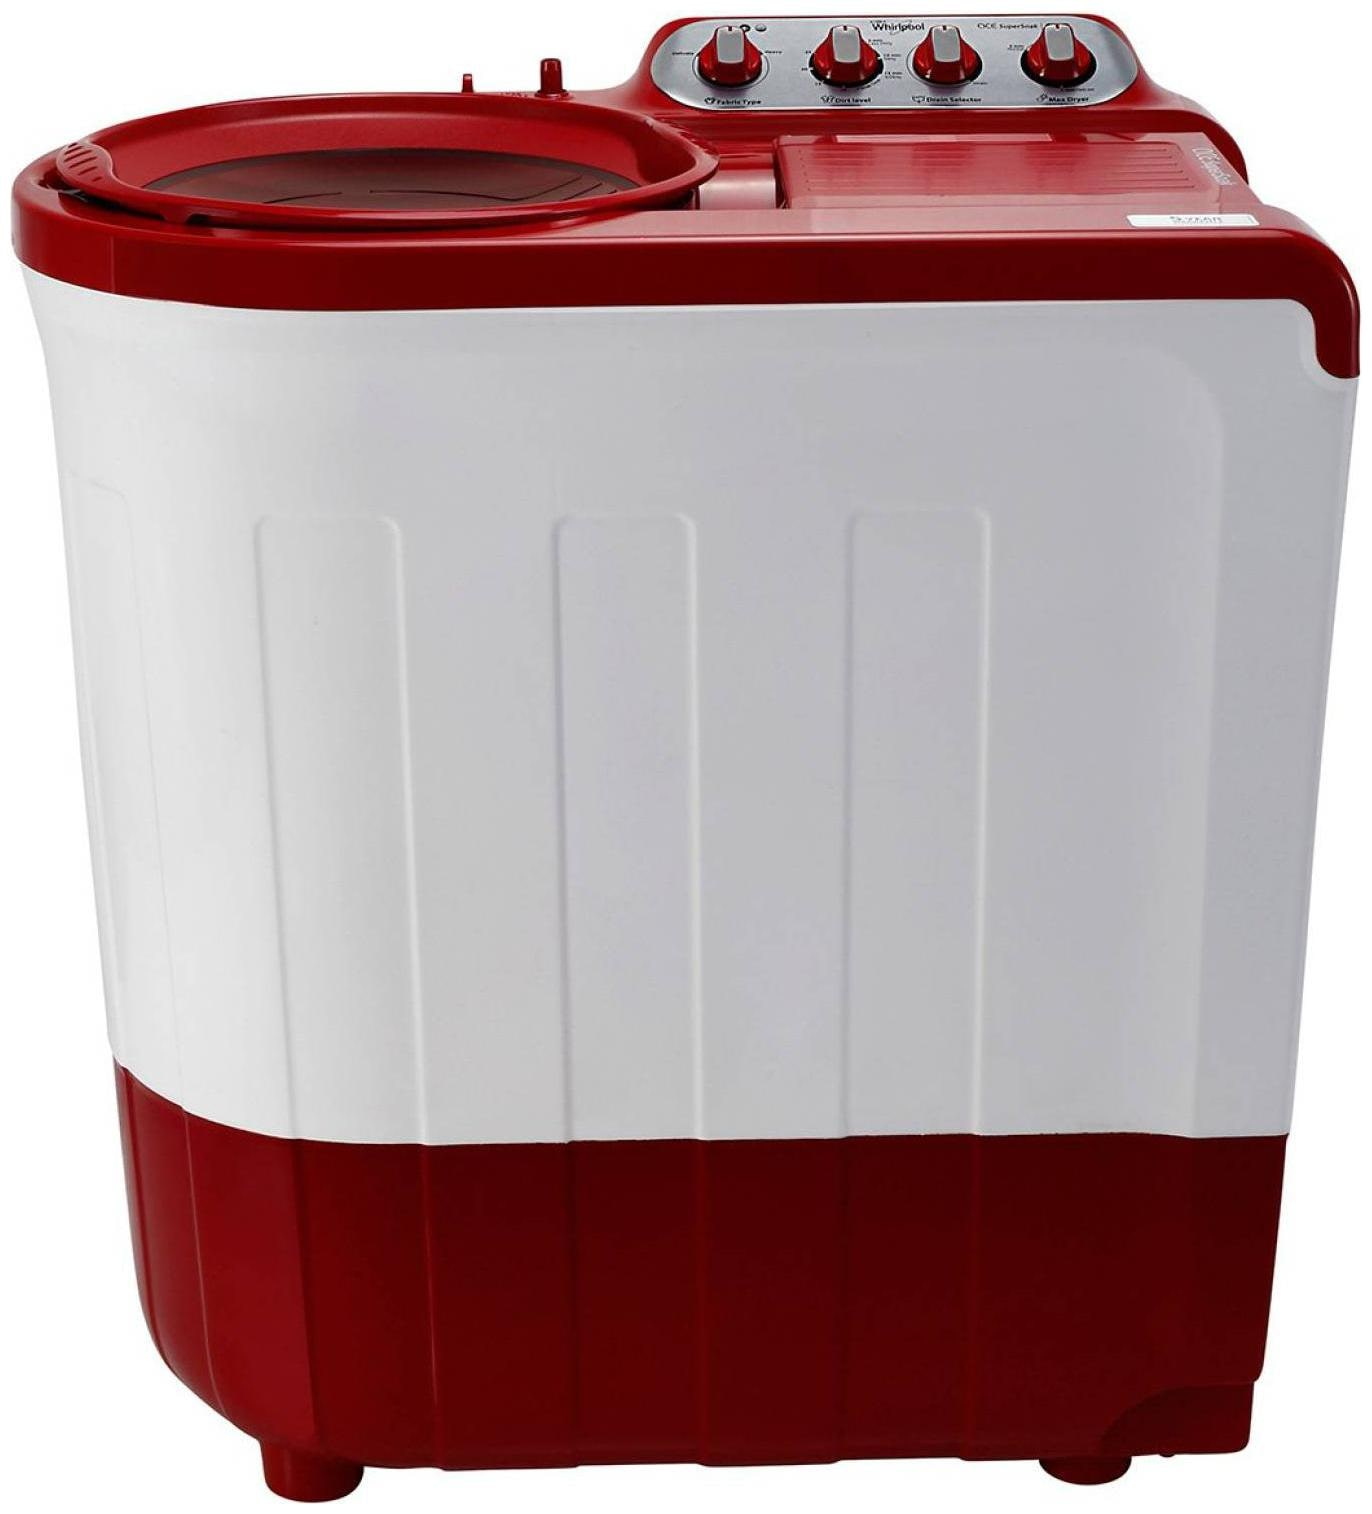 Whirlpool 7.5 Kg Semi automatic top load Washing machine   ACE 7.5 SUP SOAK  CORAL RE 30161 , Coral red